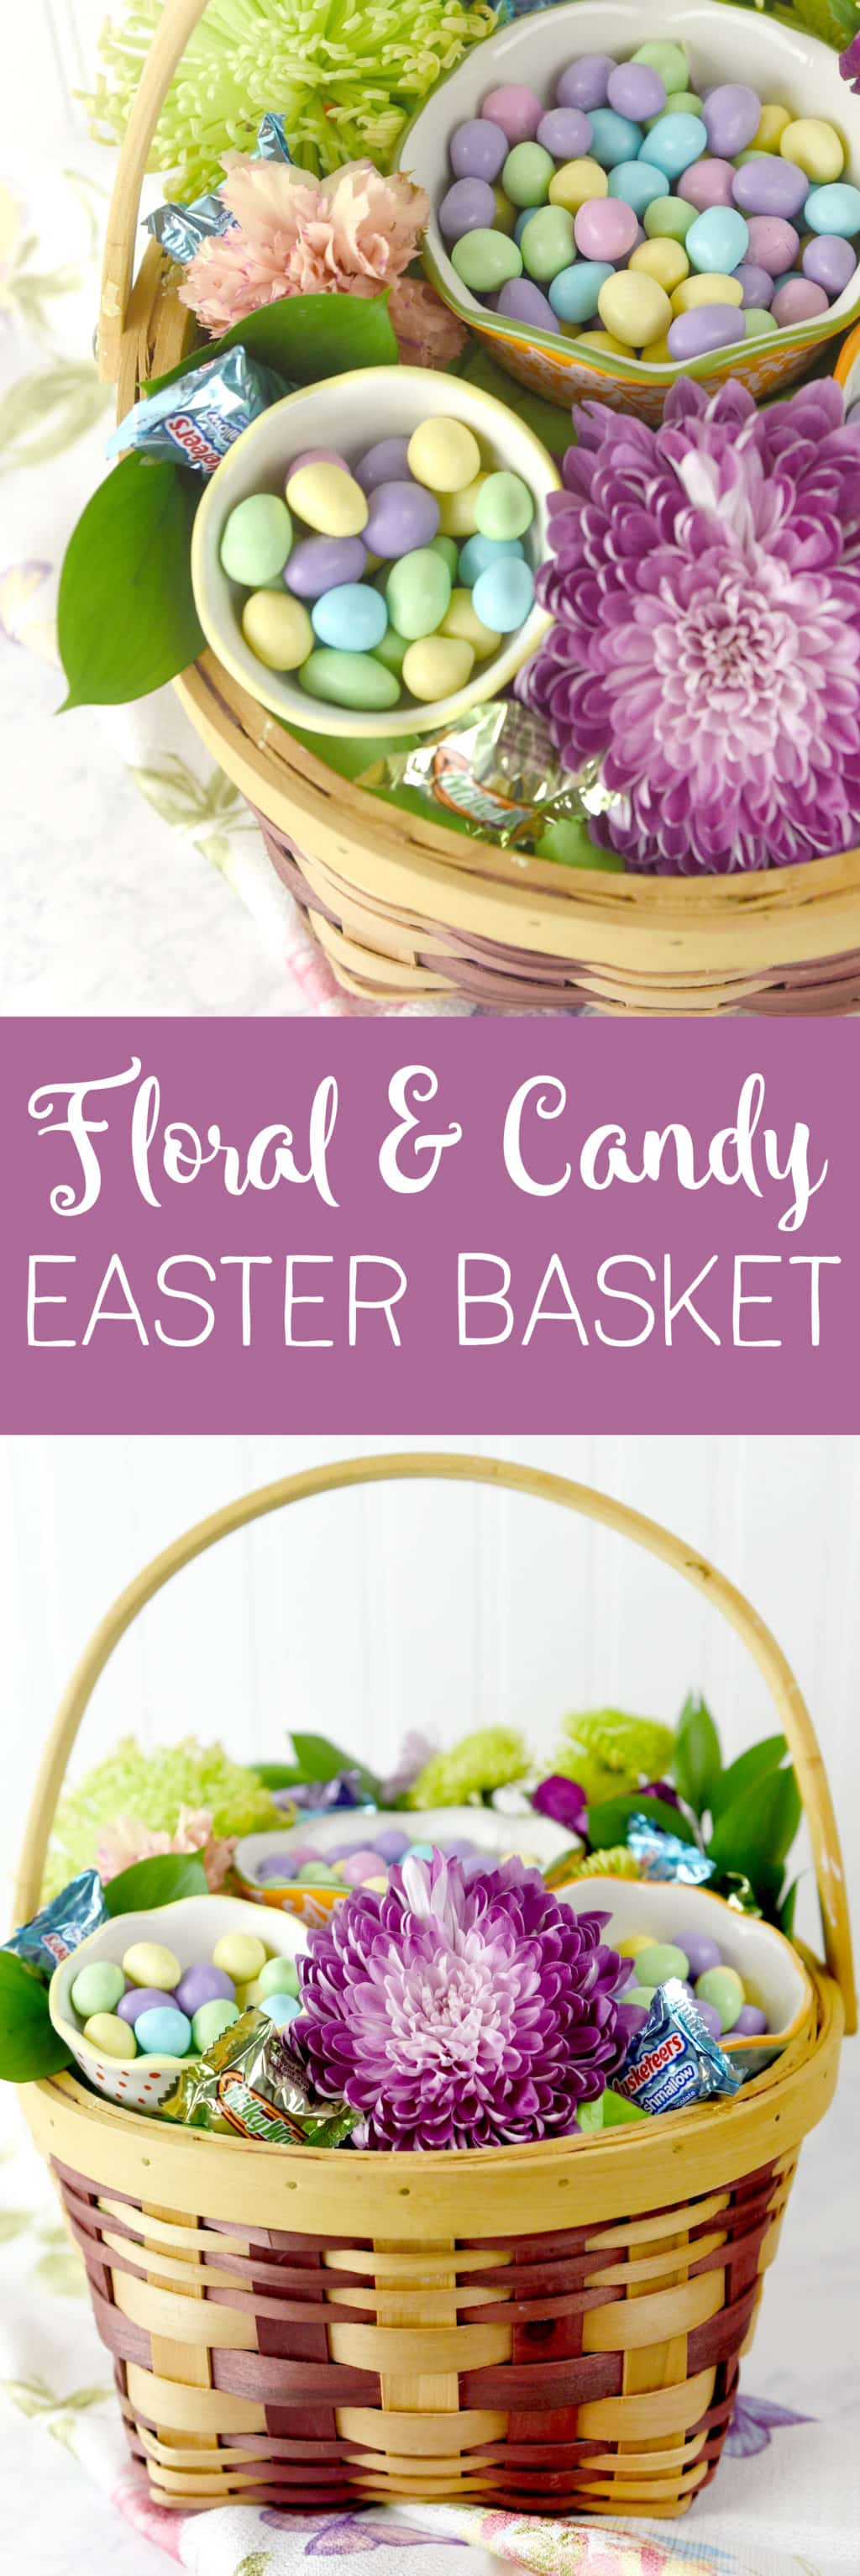 Floral & Candy Easter Basket Idea! Such a fun Easter basket or centerpiece!